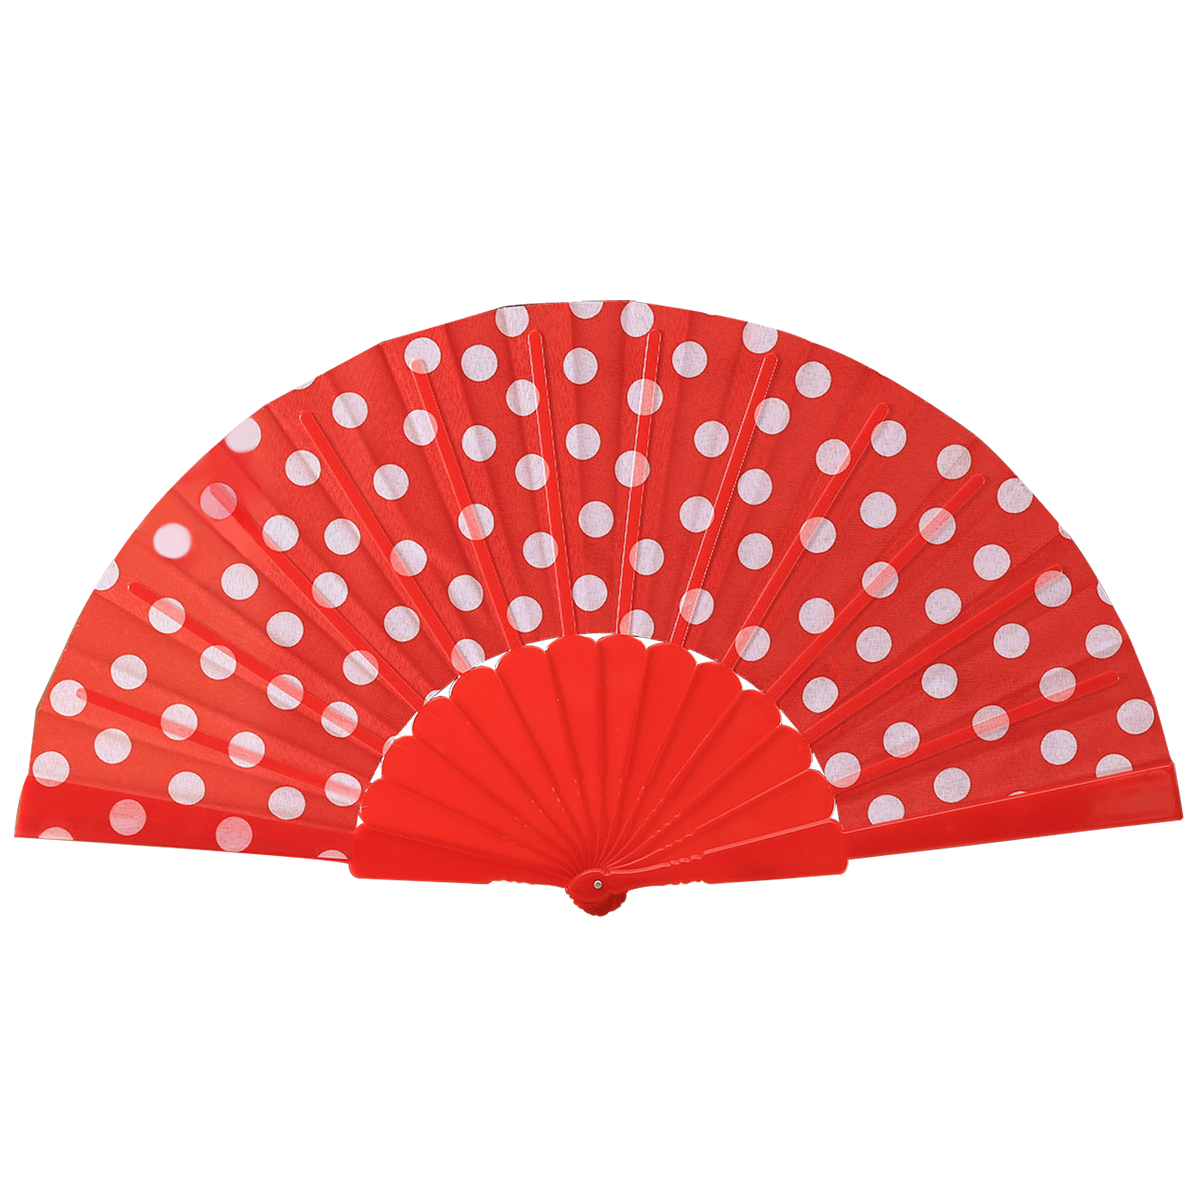 Spanish Fan Folding Hand Held Dance Pattern Party Wedding NEW Red And White